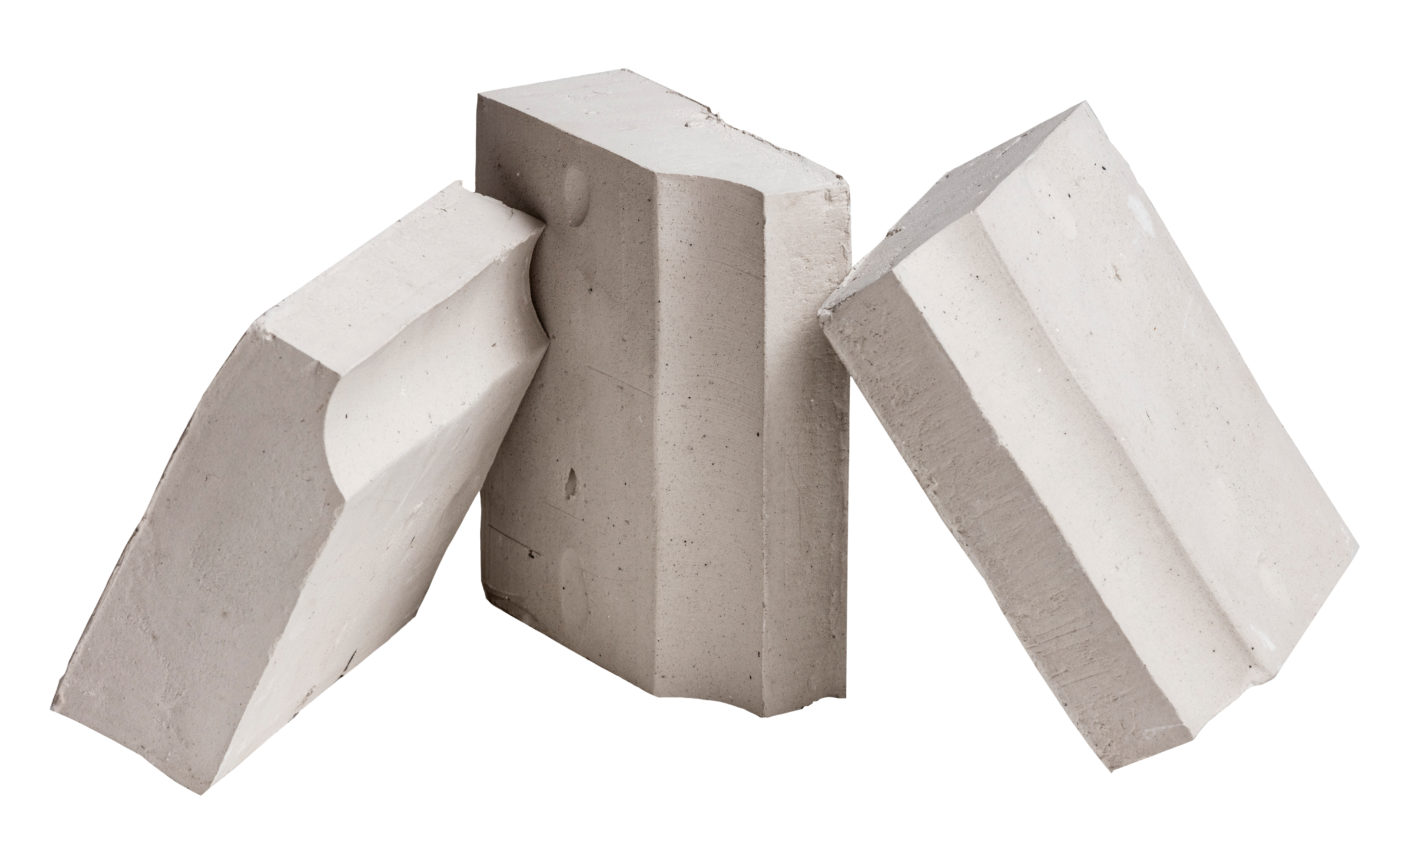 In order to be able to position the LEDs in the closed shell, Petersen produced hollow bricks.